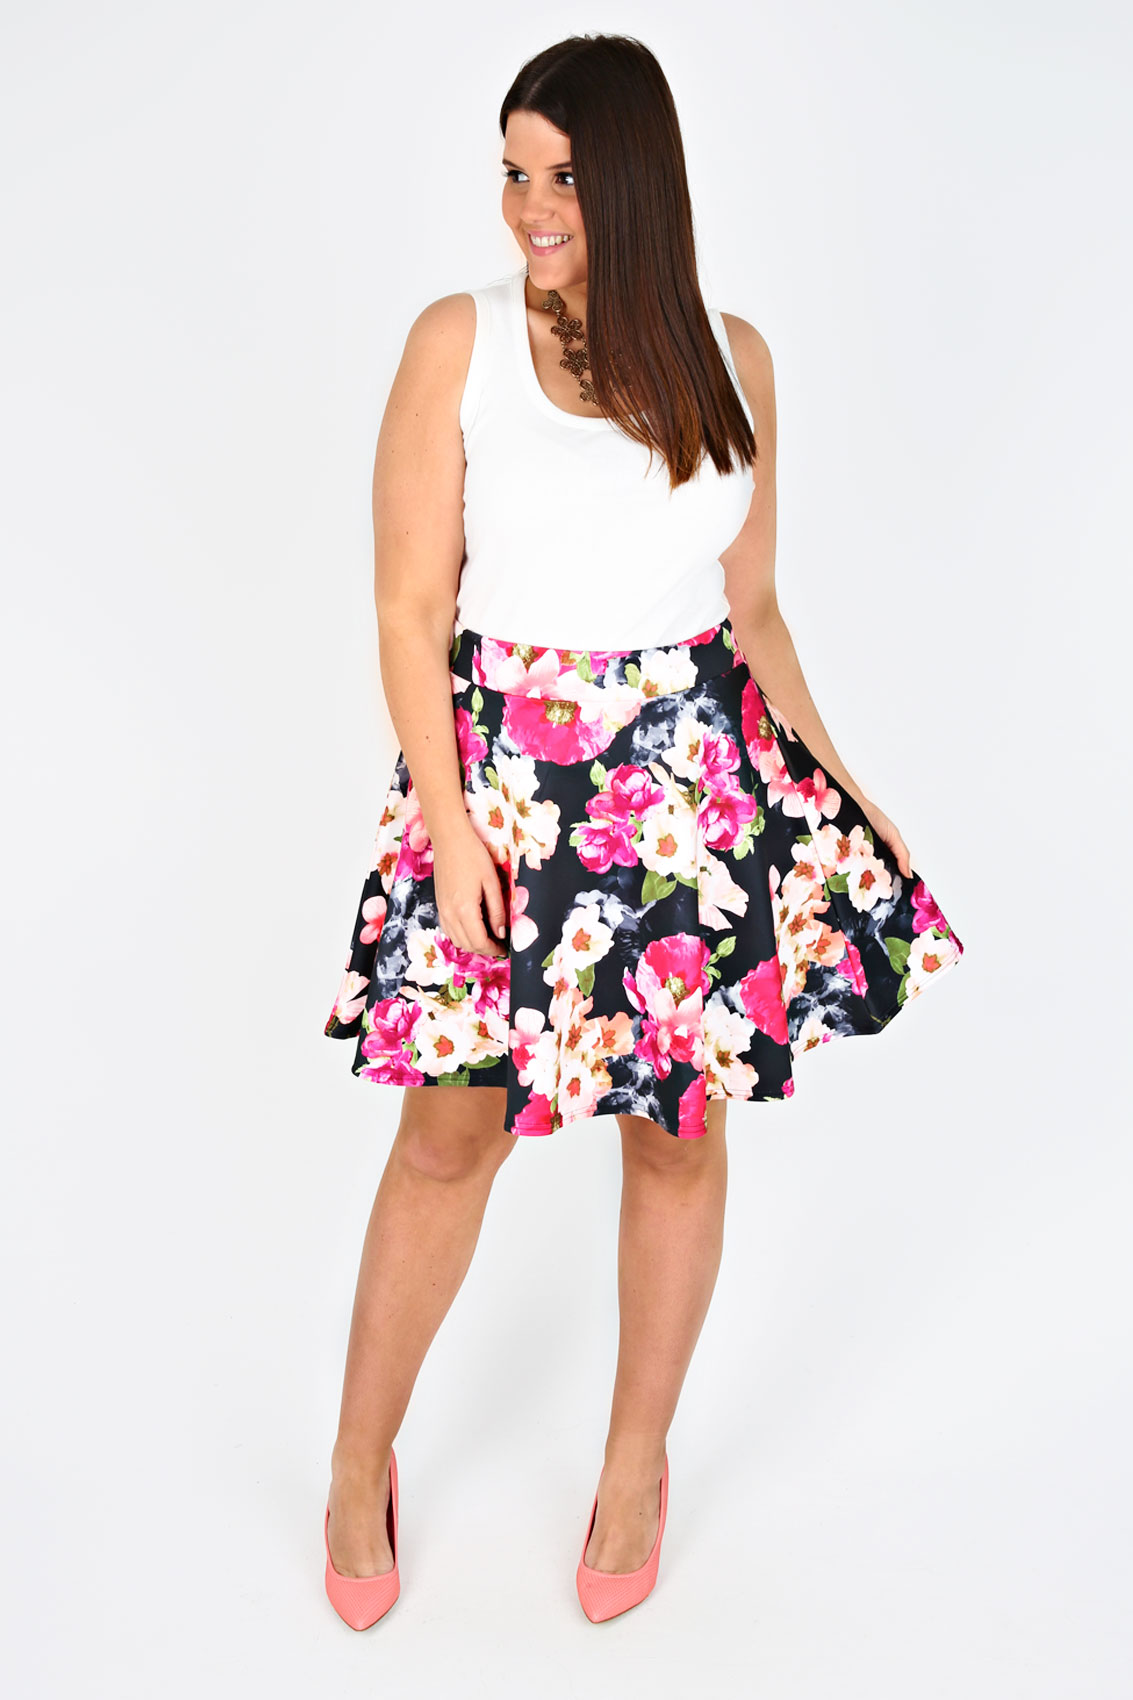 Ruffle Shoulder Striped Peplum Top with Skirt Set in Black. $ $* Floral Sweetheart Bardot Skater Dress in Black. $ $* Women's Plus Size Dresses. Discover UrbanOG Plus Size Collection for the hottest and most fashionable Plus Size Dresses! This is the perfect moment for every curvy Plus Size Lady to show off their.